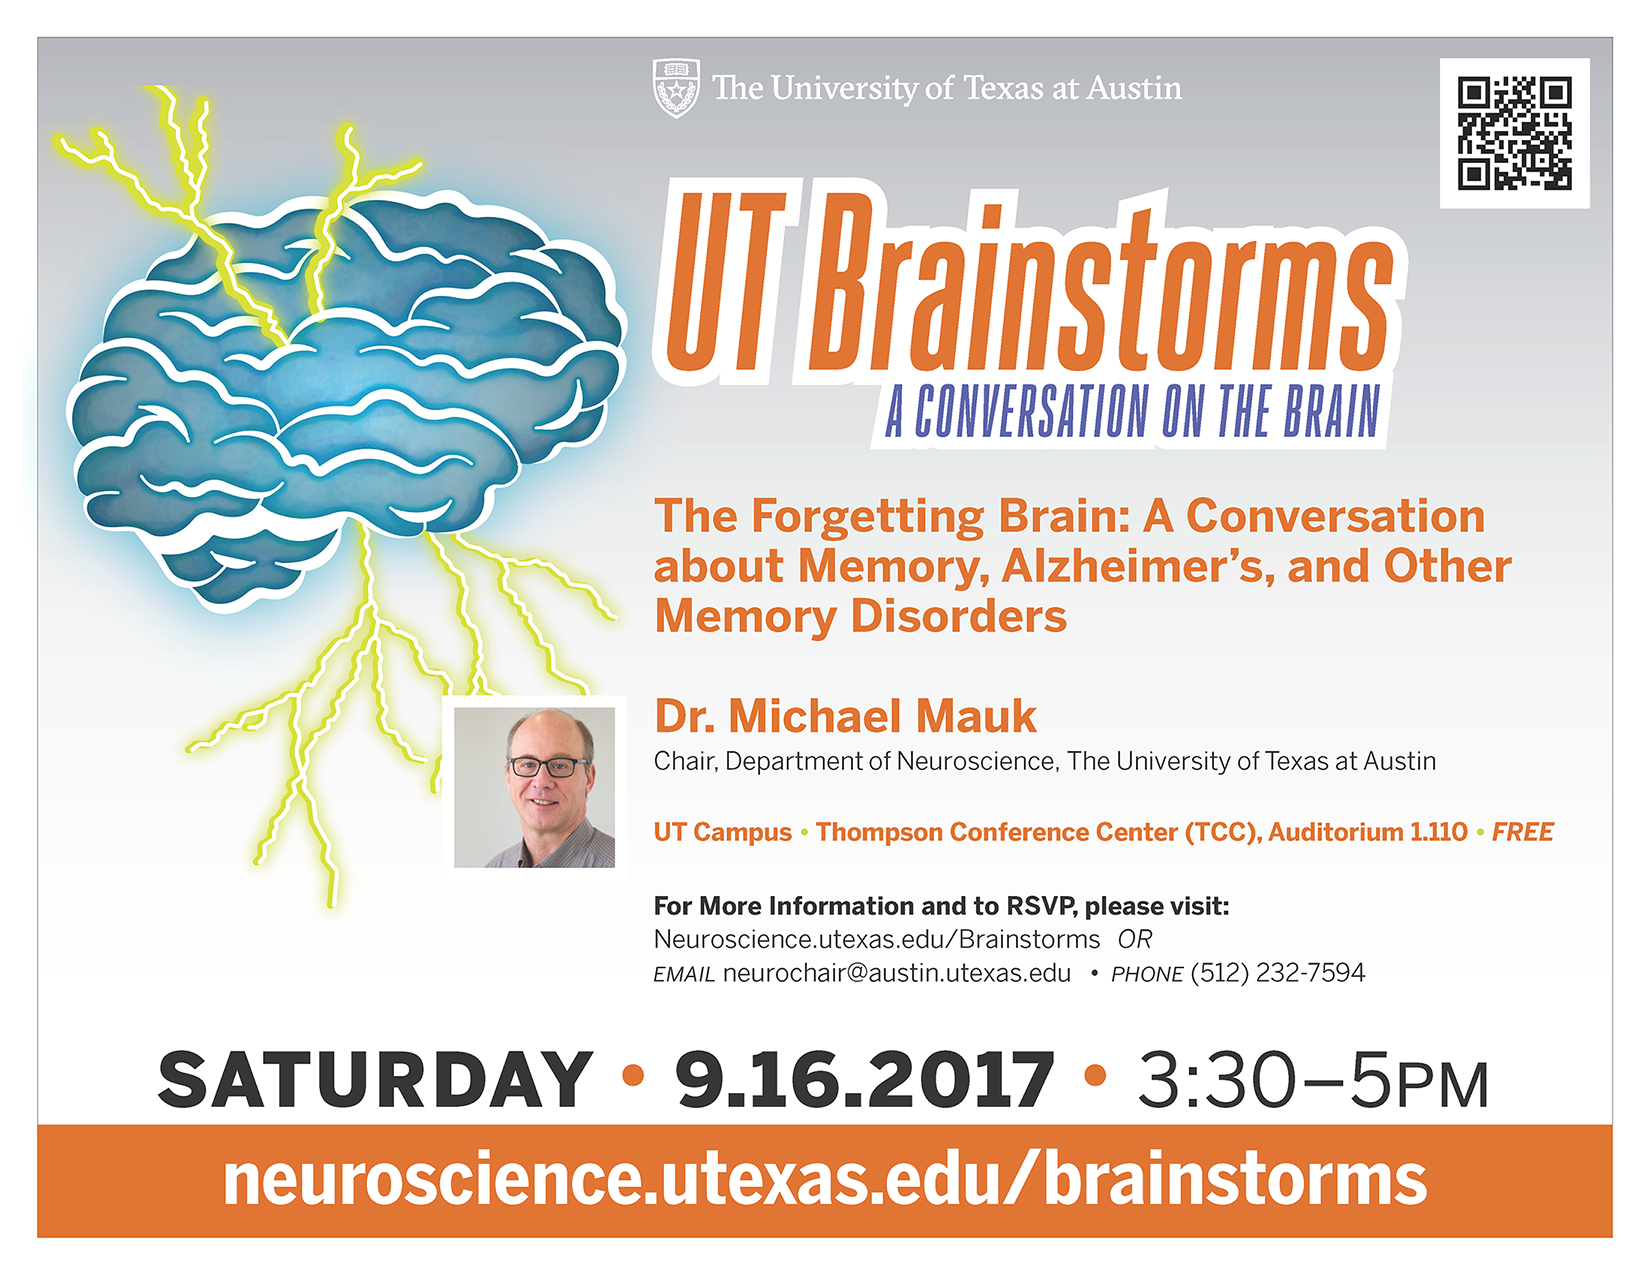 UT Brainstorms flyer